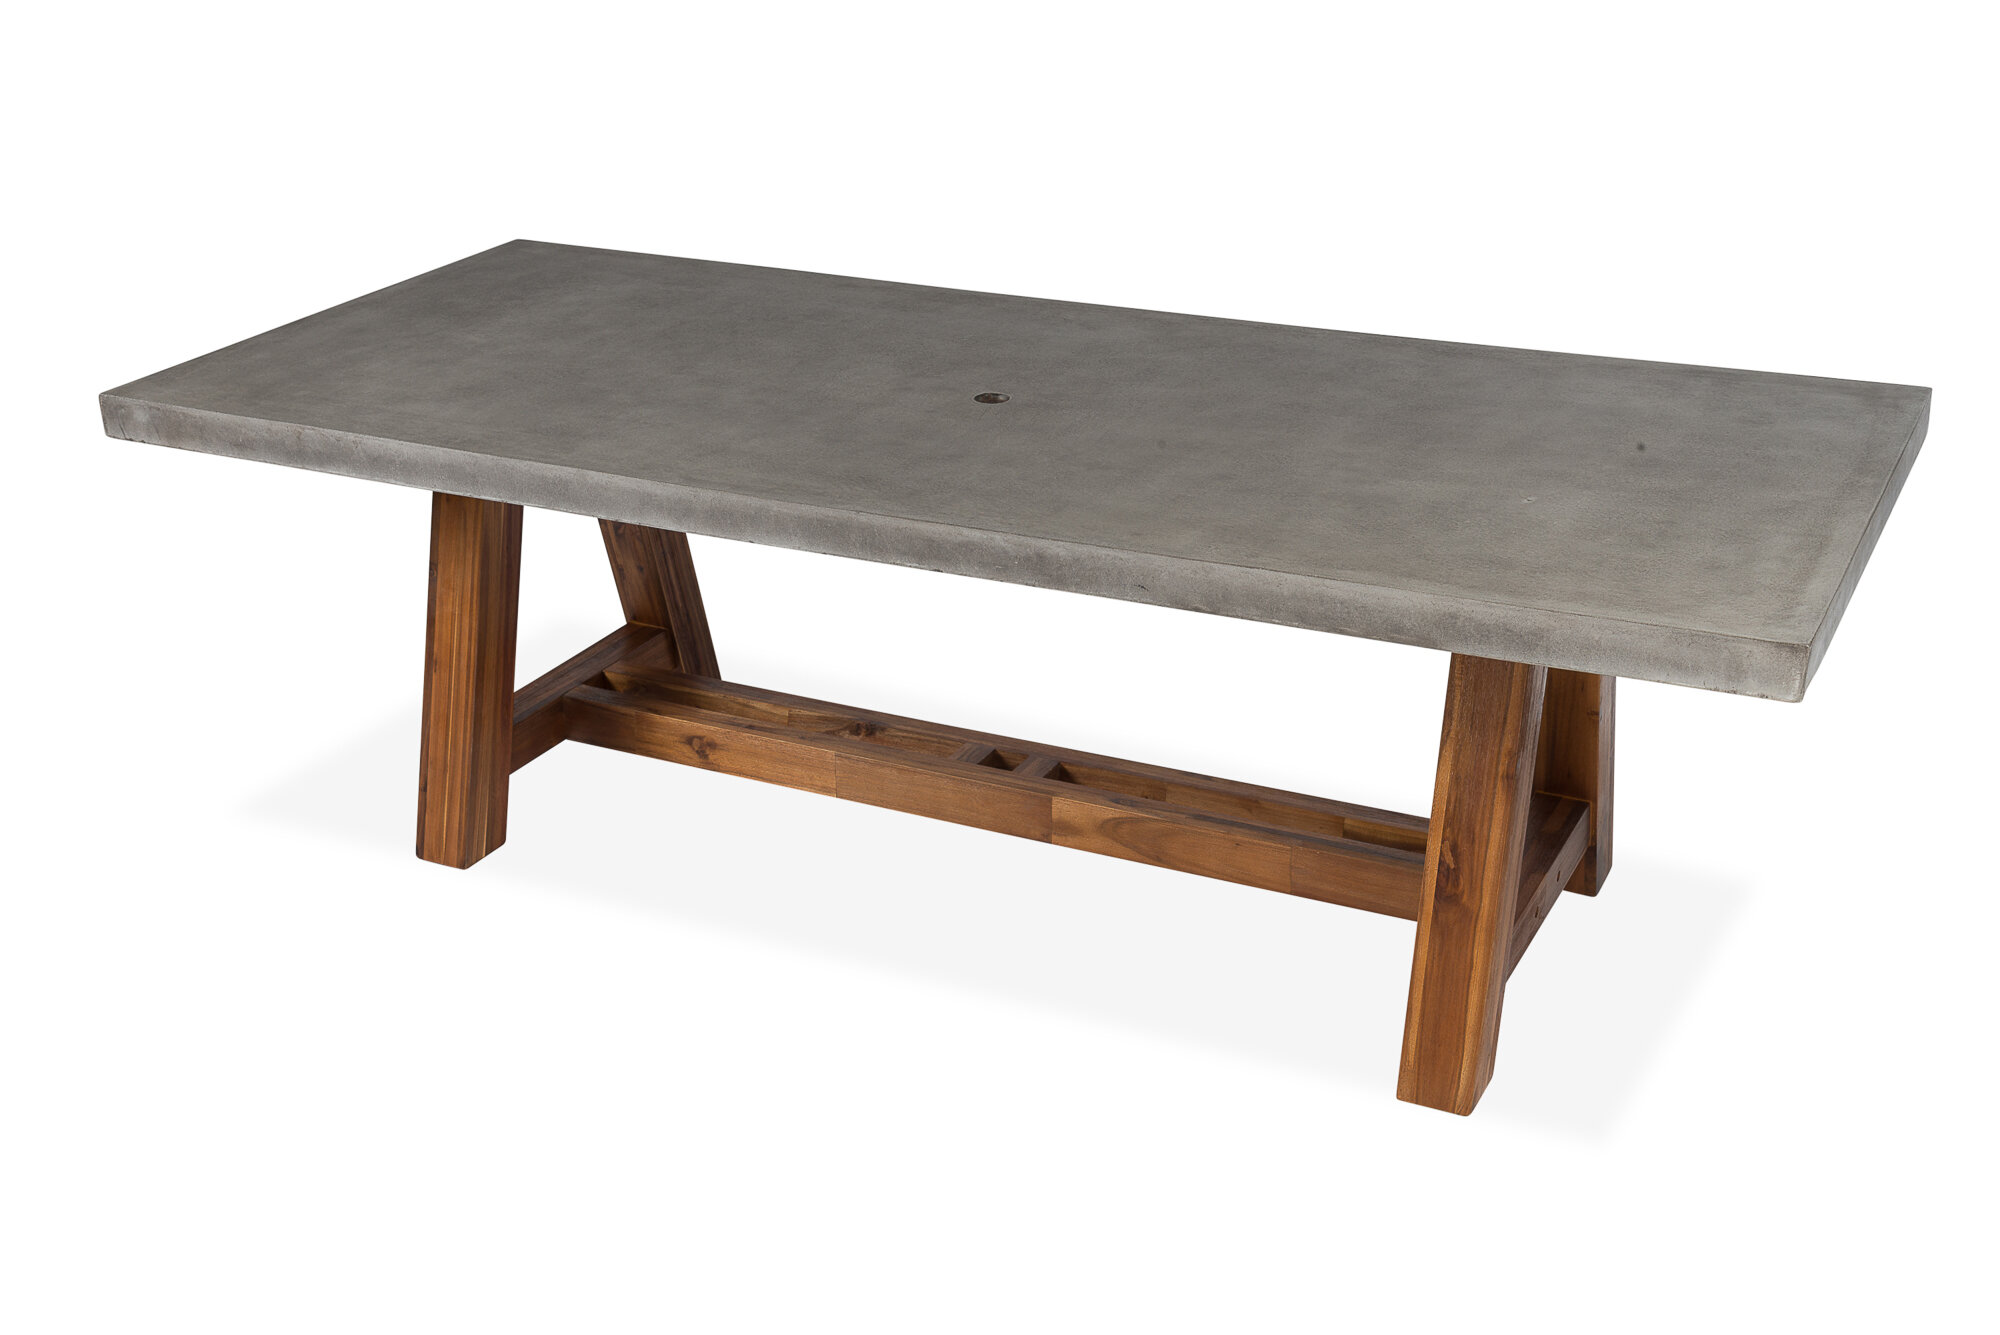 Foundry Select Colegrove Stone Dining Table Wayfair - Wood and stone dining table